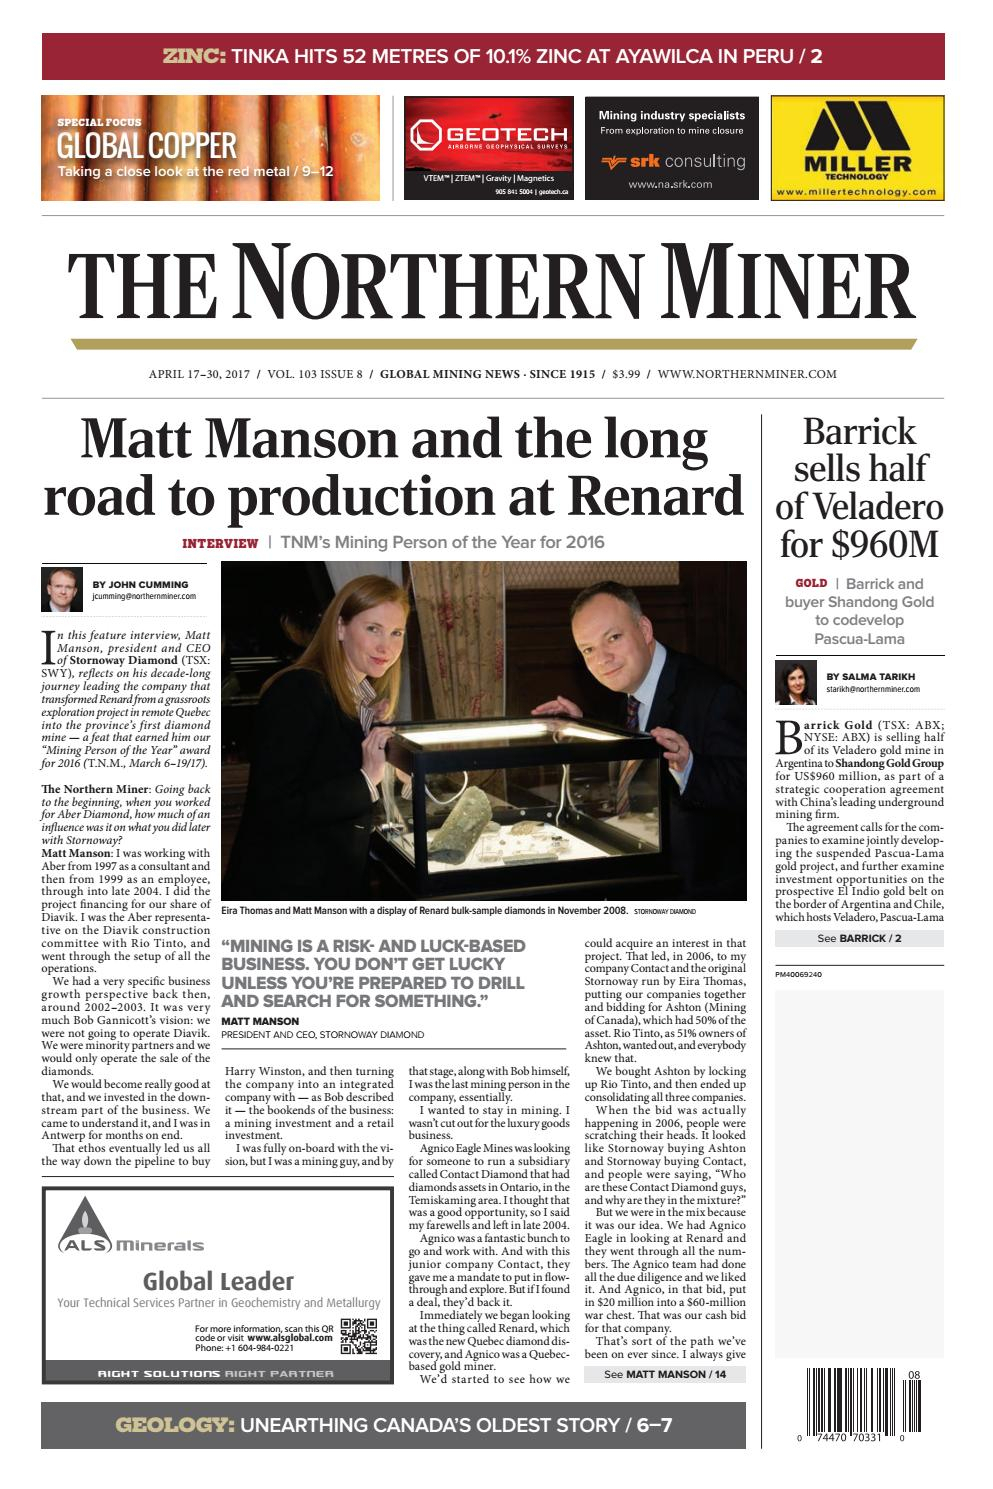 The Northern Miner April 17 2017 Issue By The Northern Miner pertaining to Zinco Corp Was A Calendar Year S Corporation